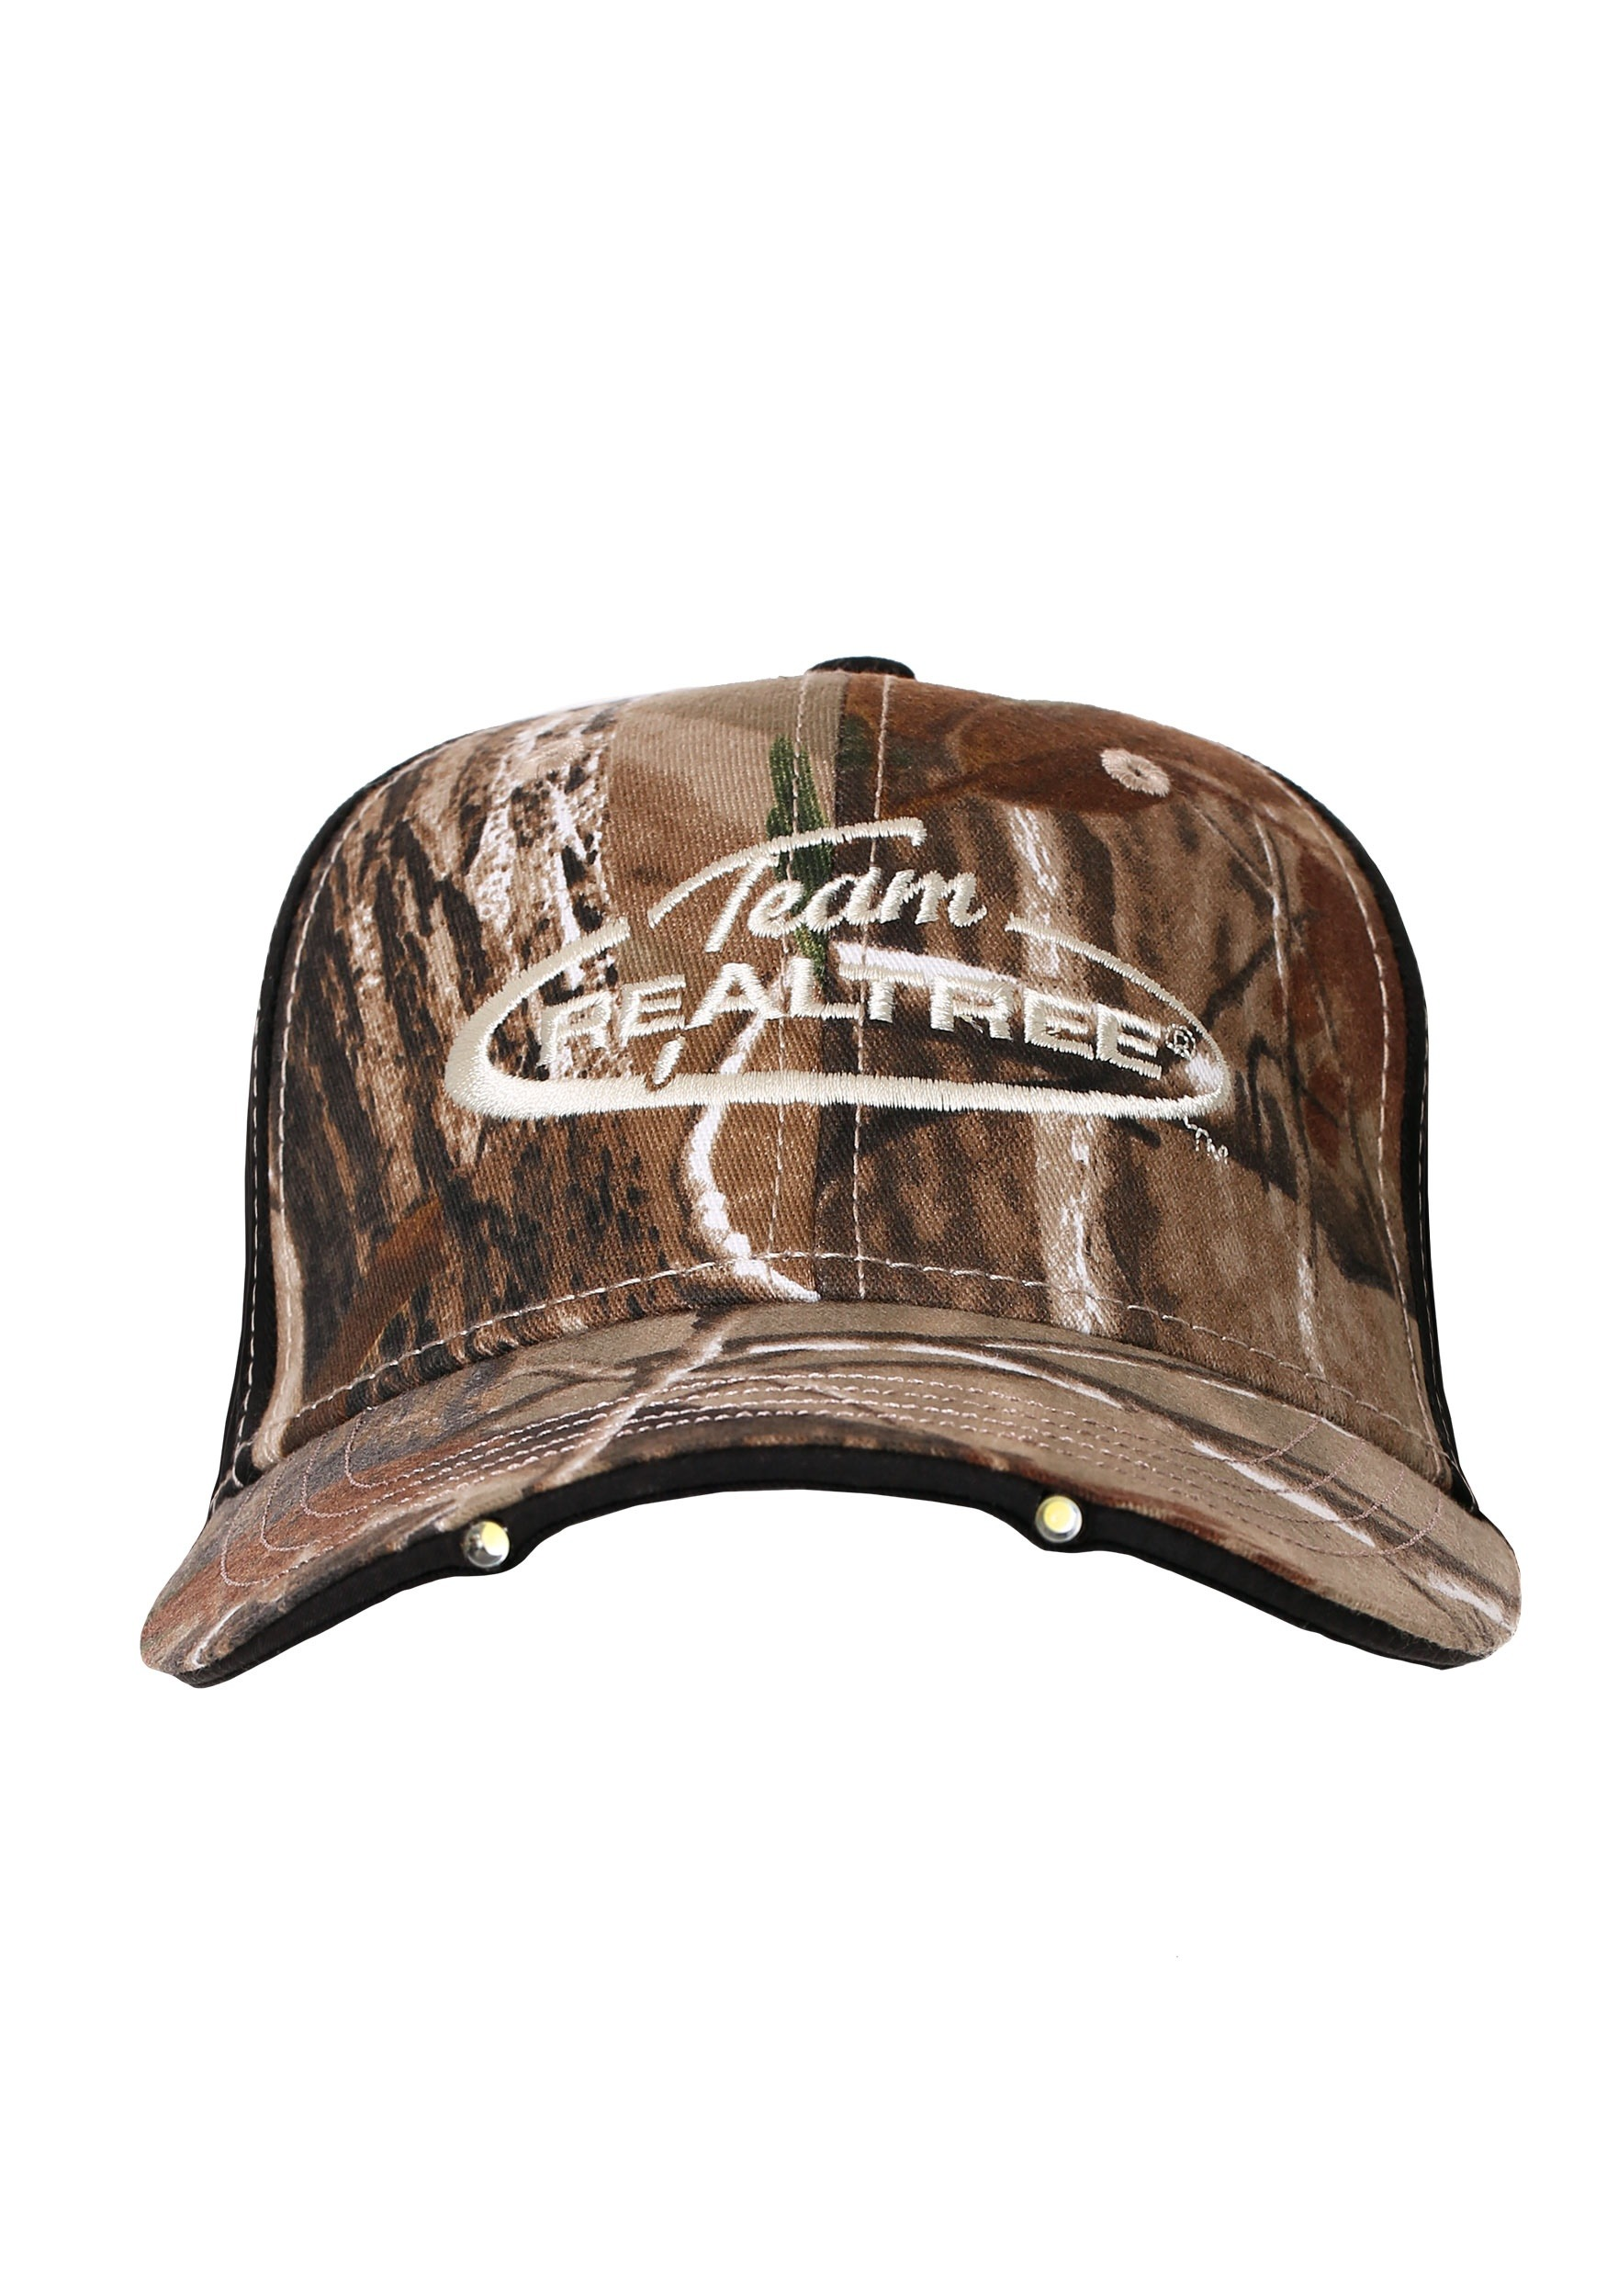 Team Realtree Camo Hat with LED Lights in Visor a51b4358ce8